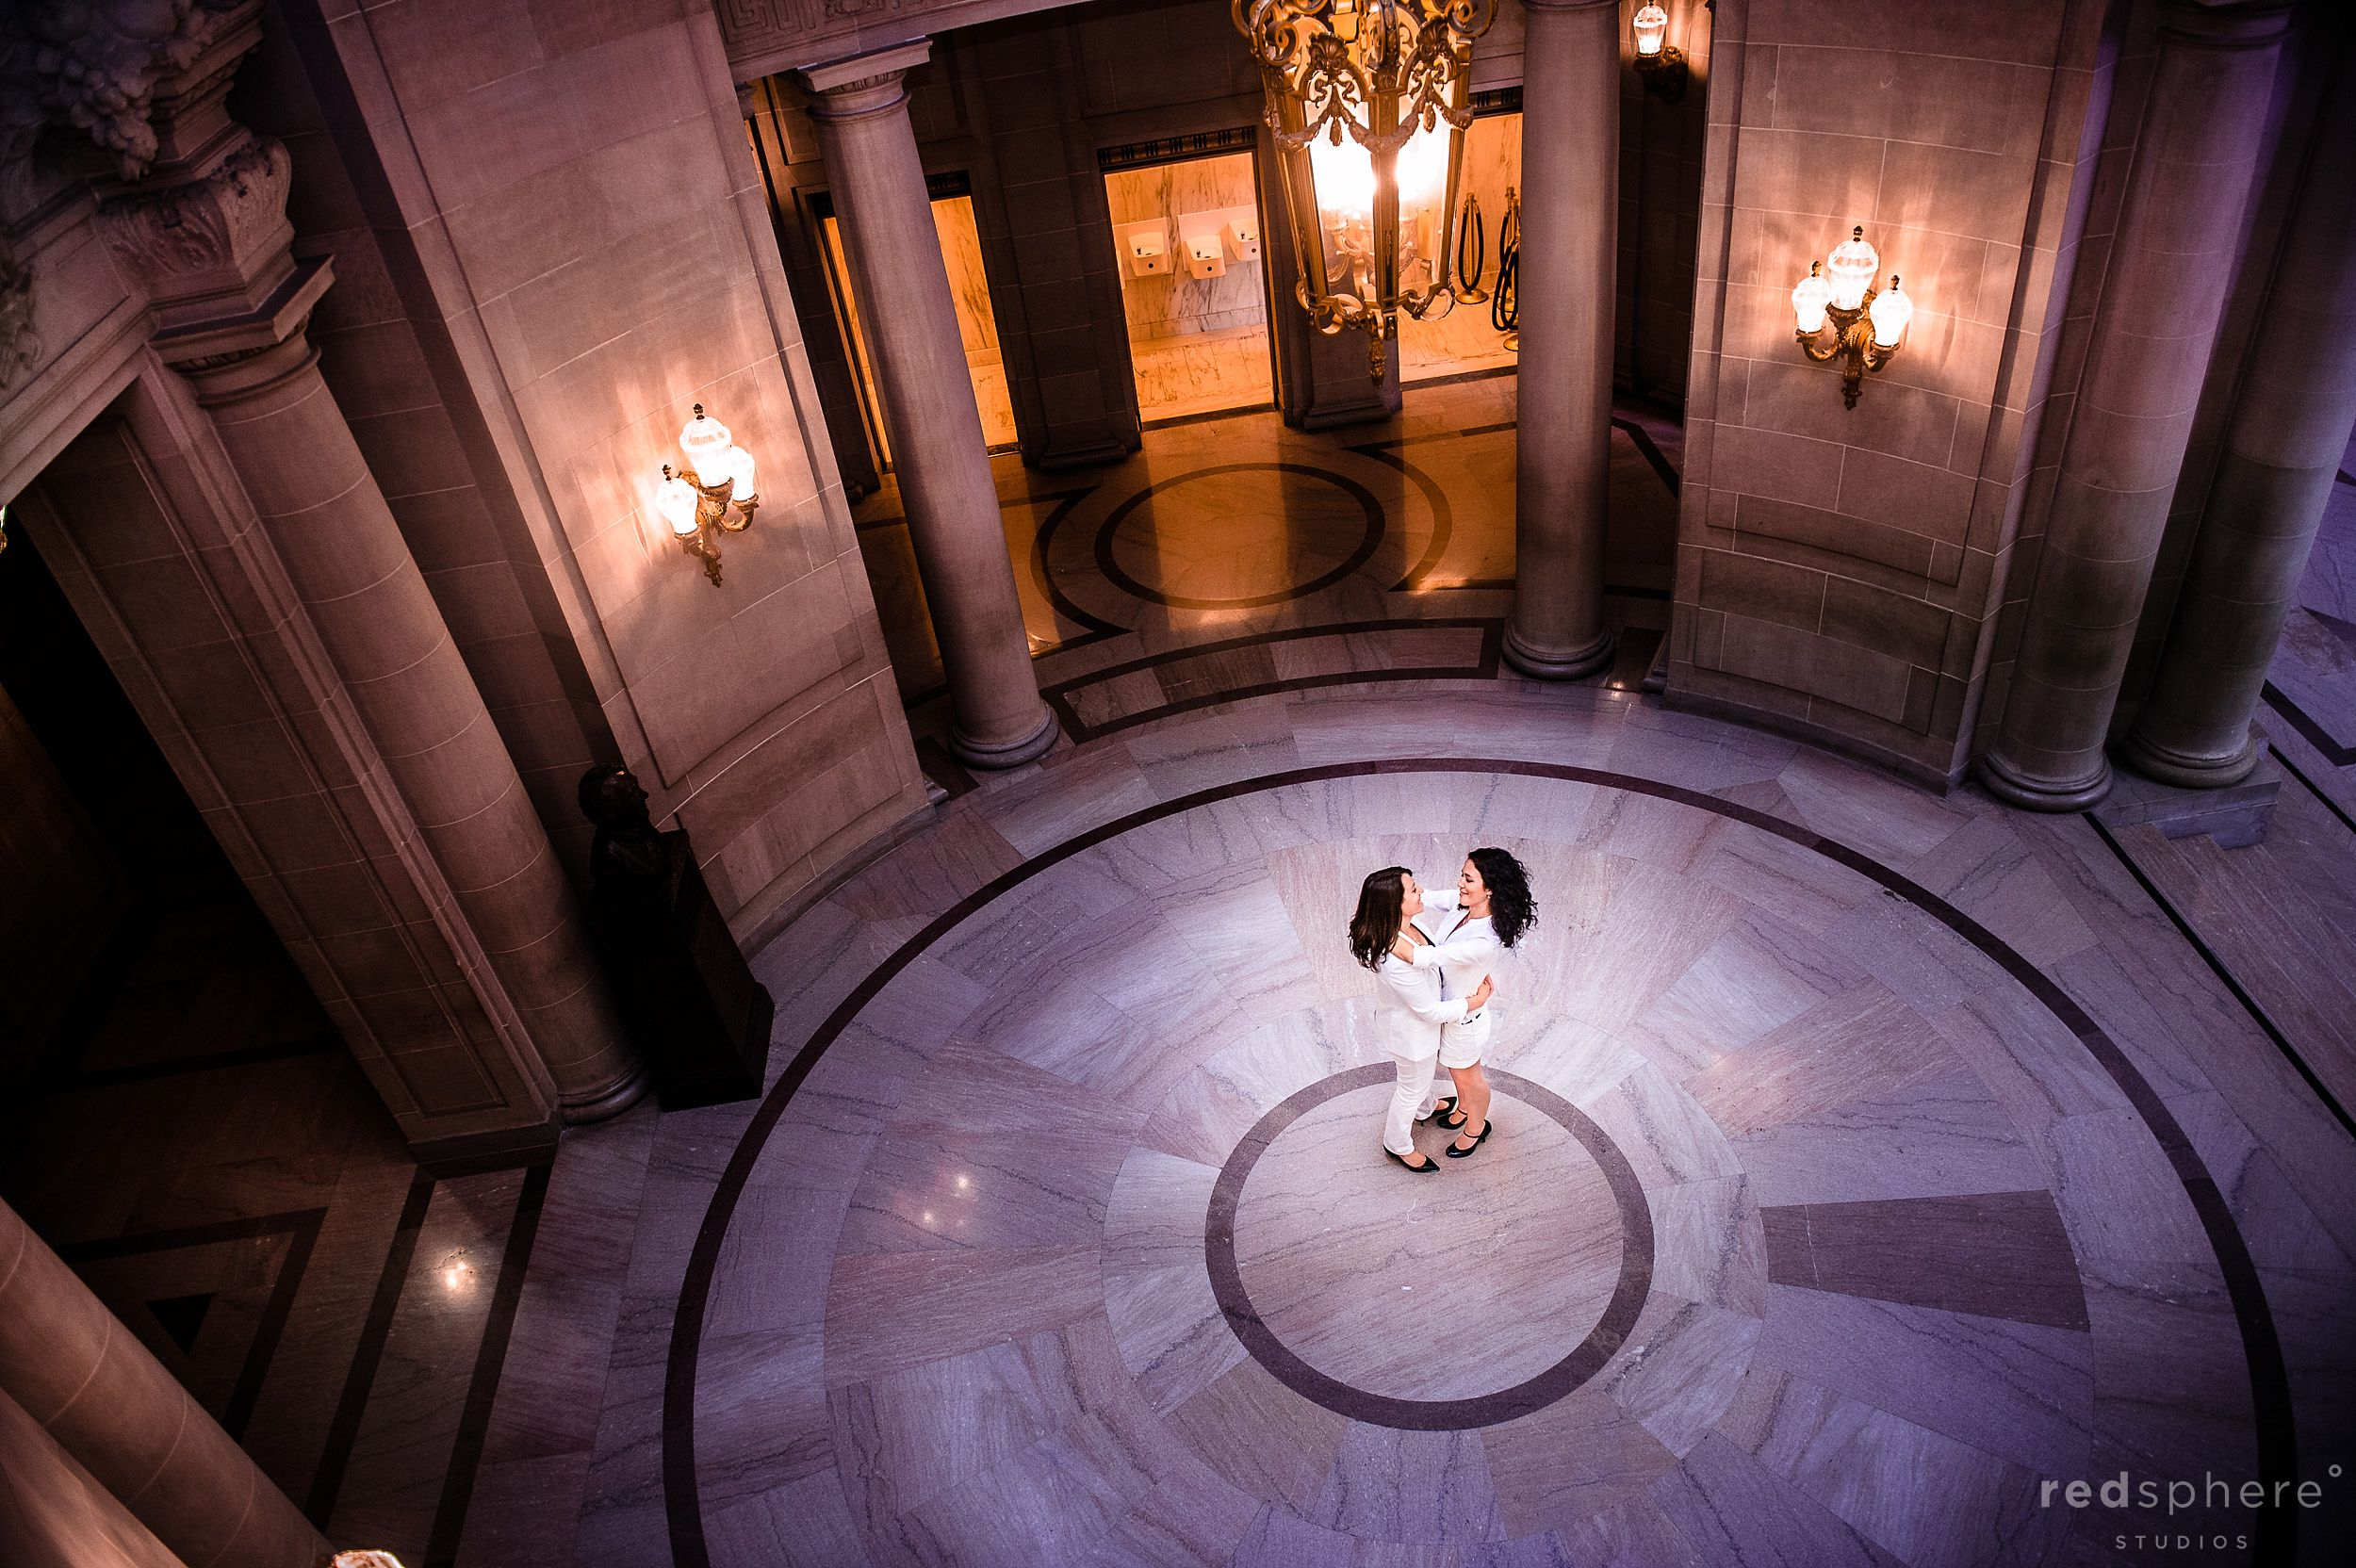 Brides Mini Dance In The Middle of Dome Type Floor, San Francisco City Hall Wedding